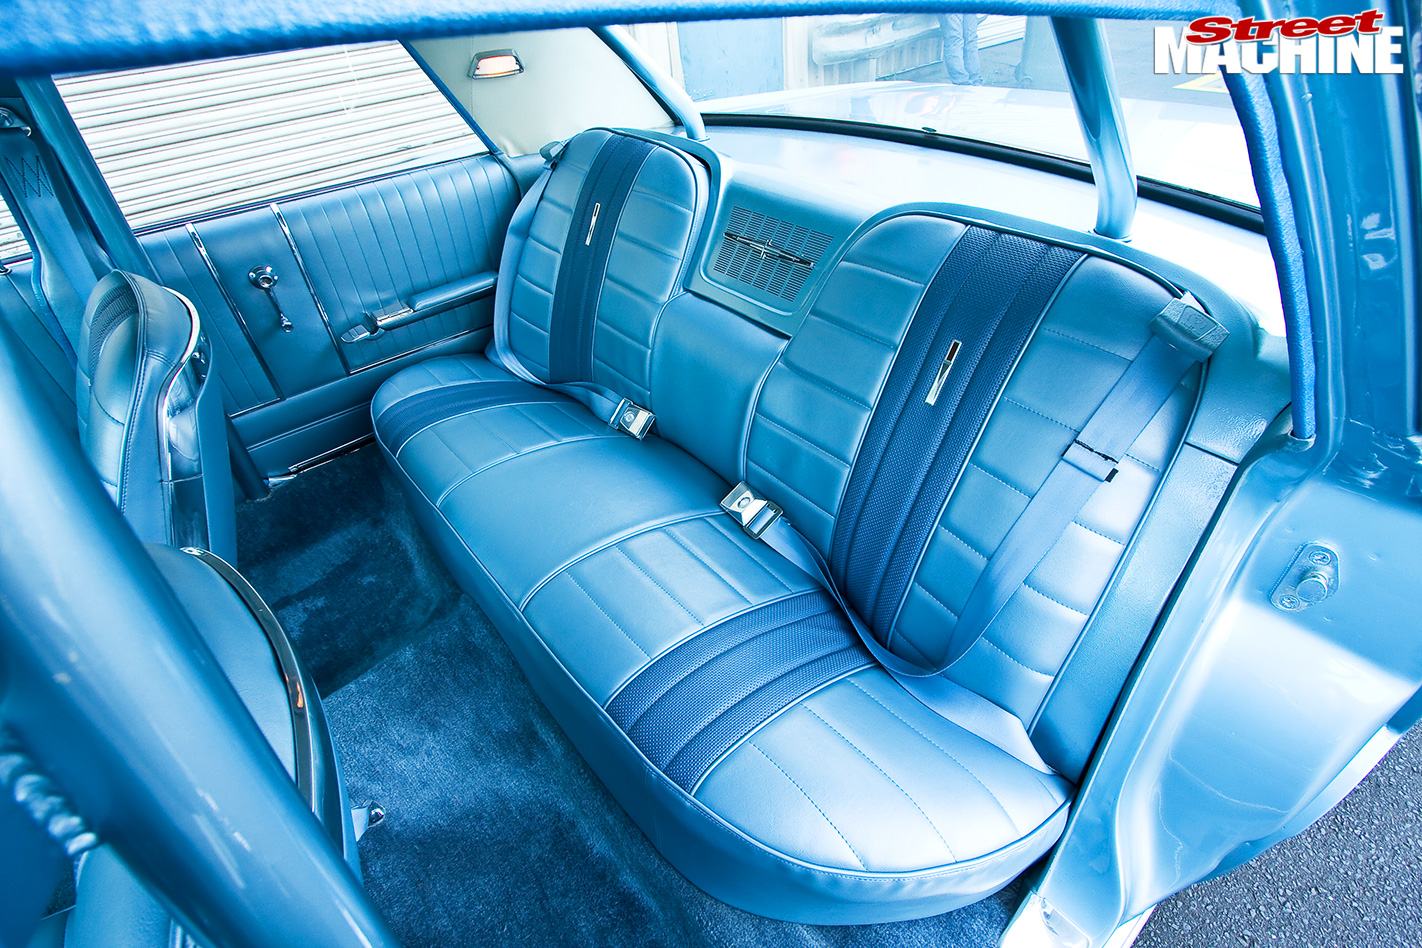 Ford -galaxie -interior -rear